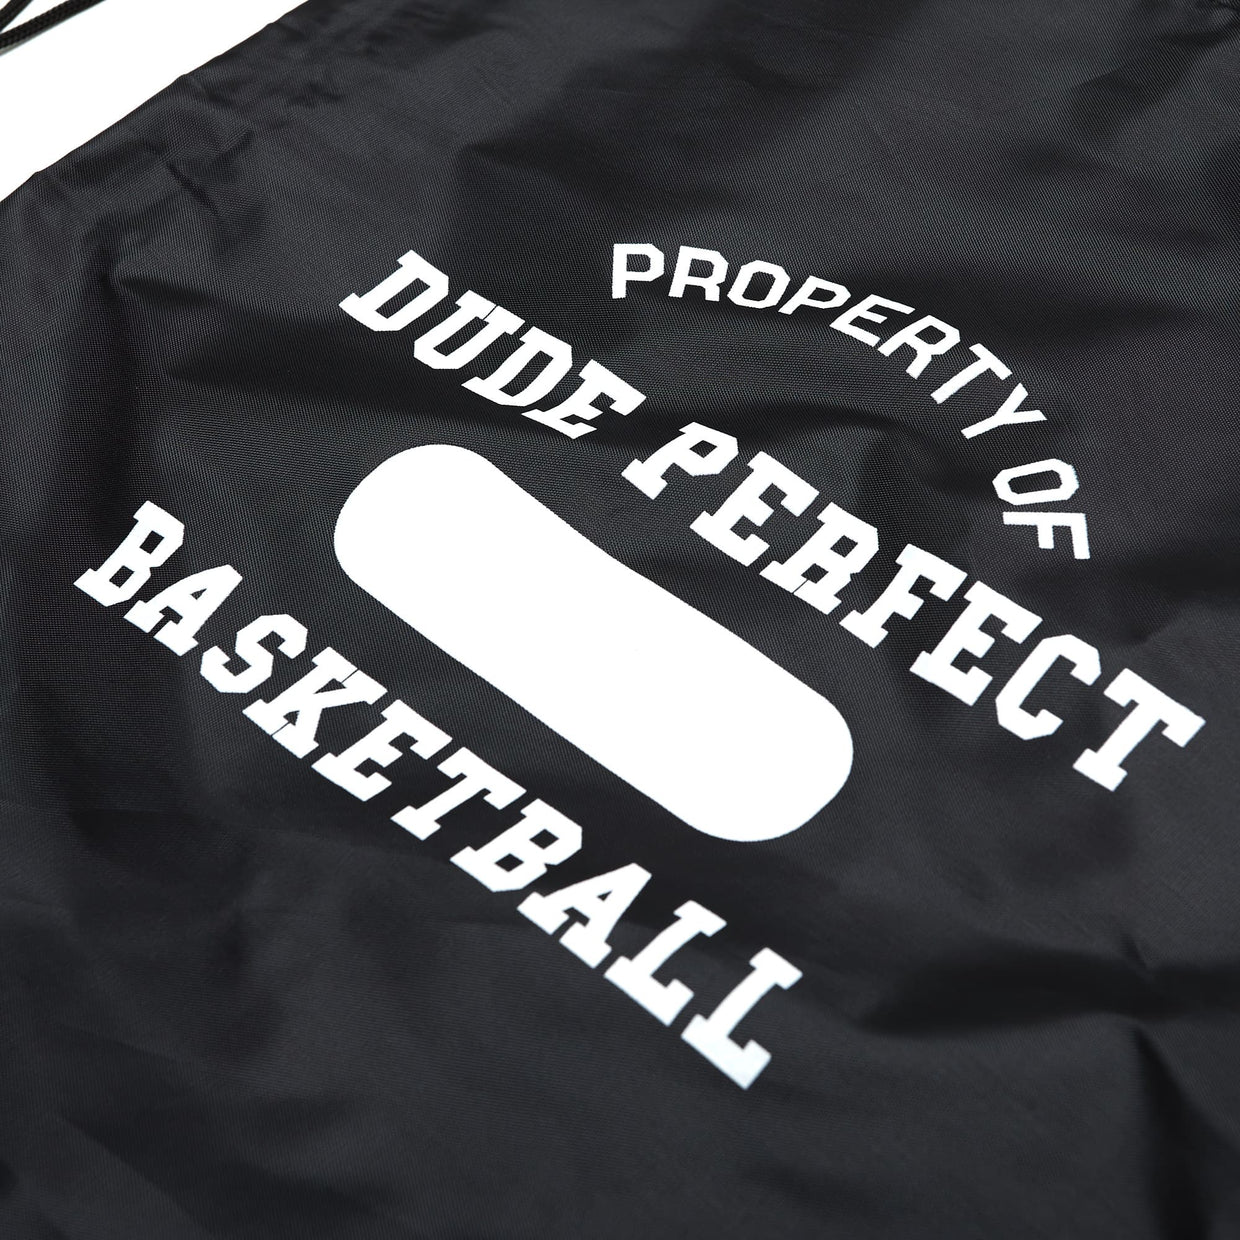 Dude Perfect All-Star Basketball Bundle Items